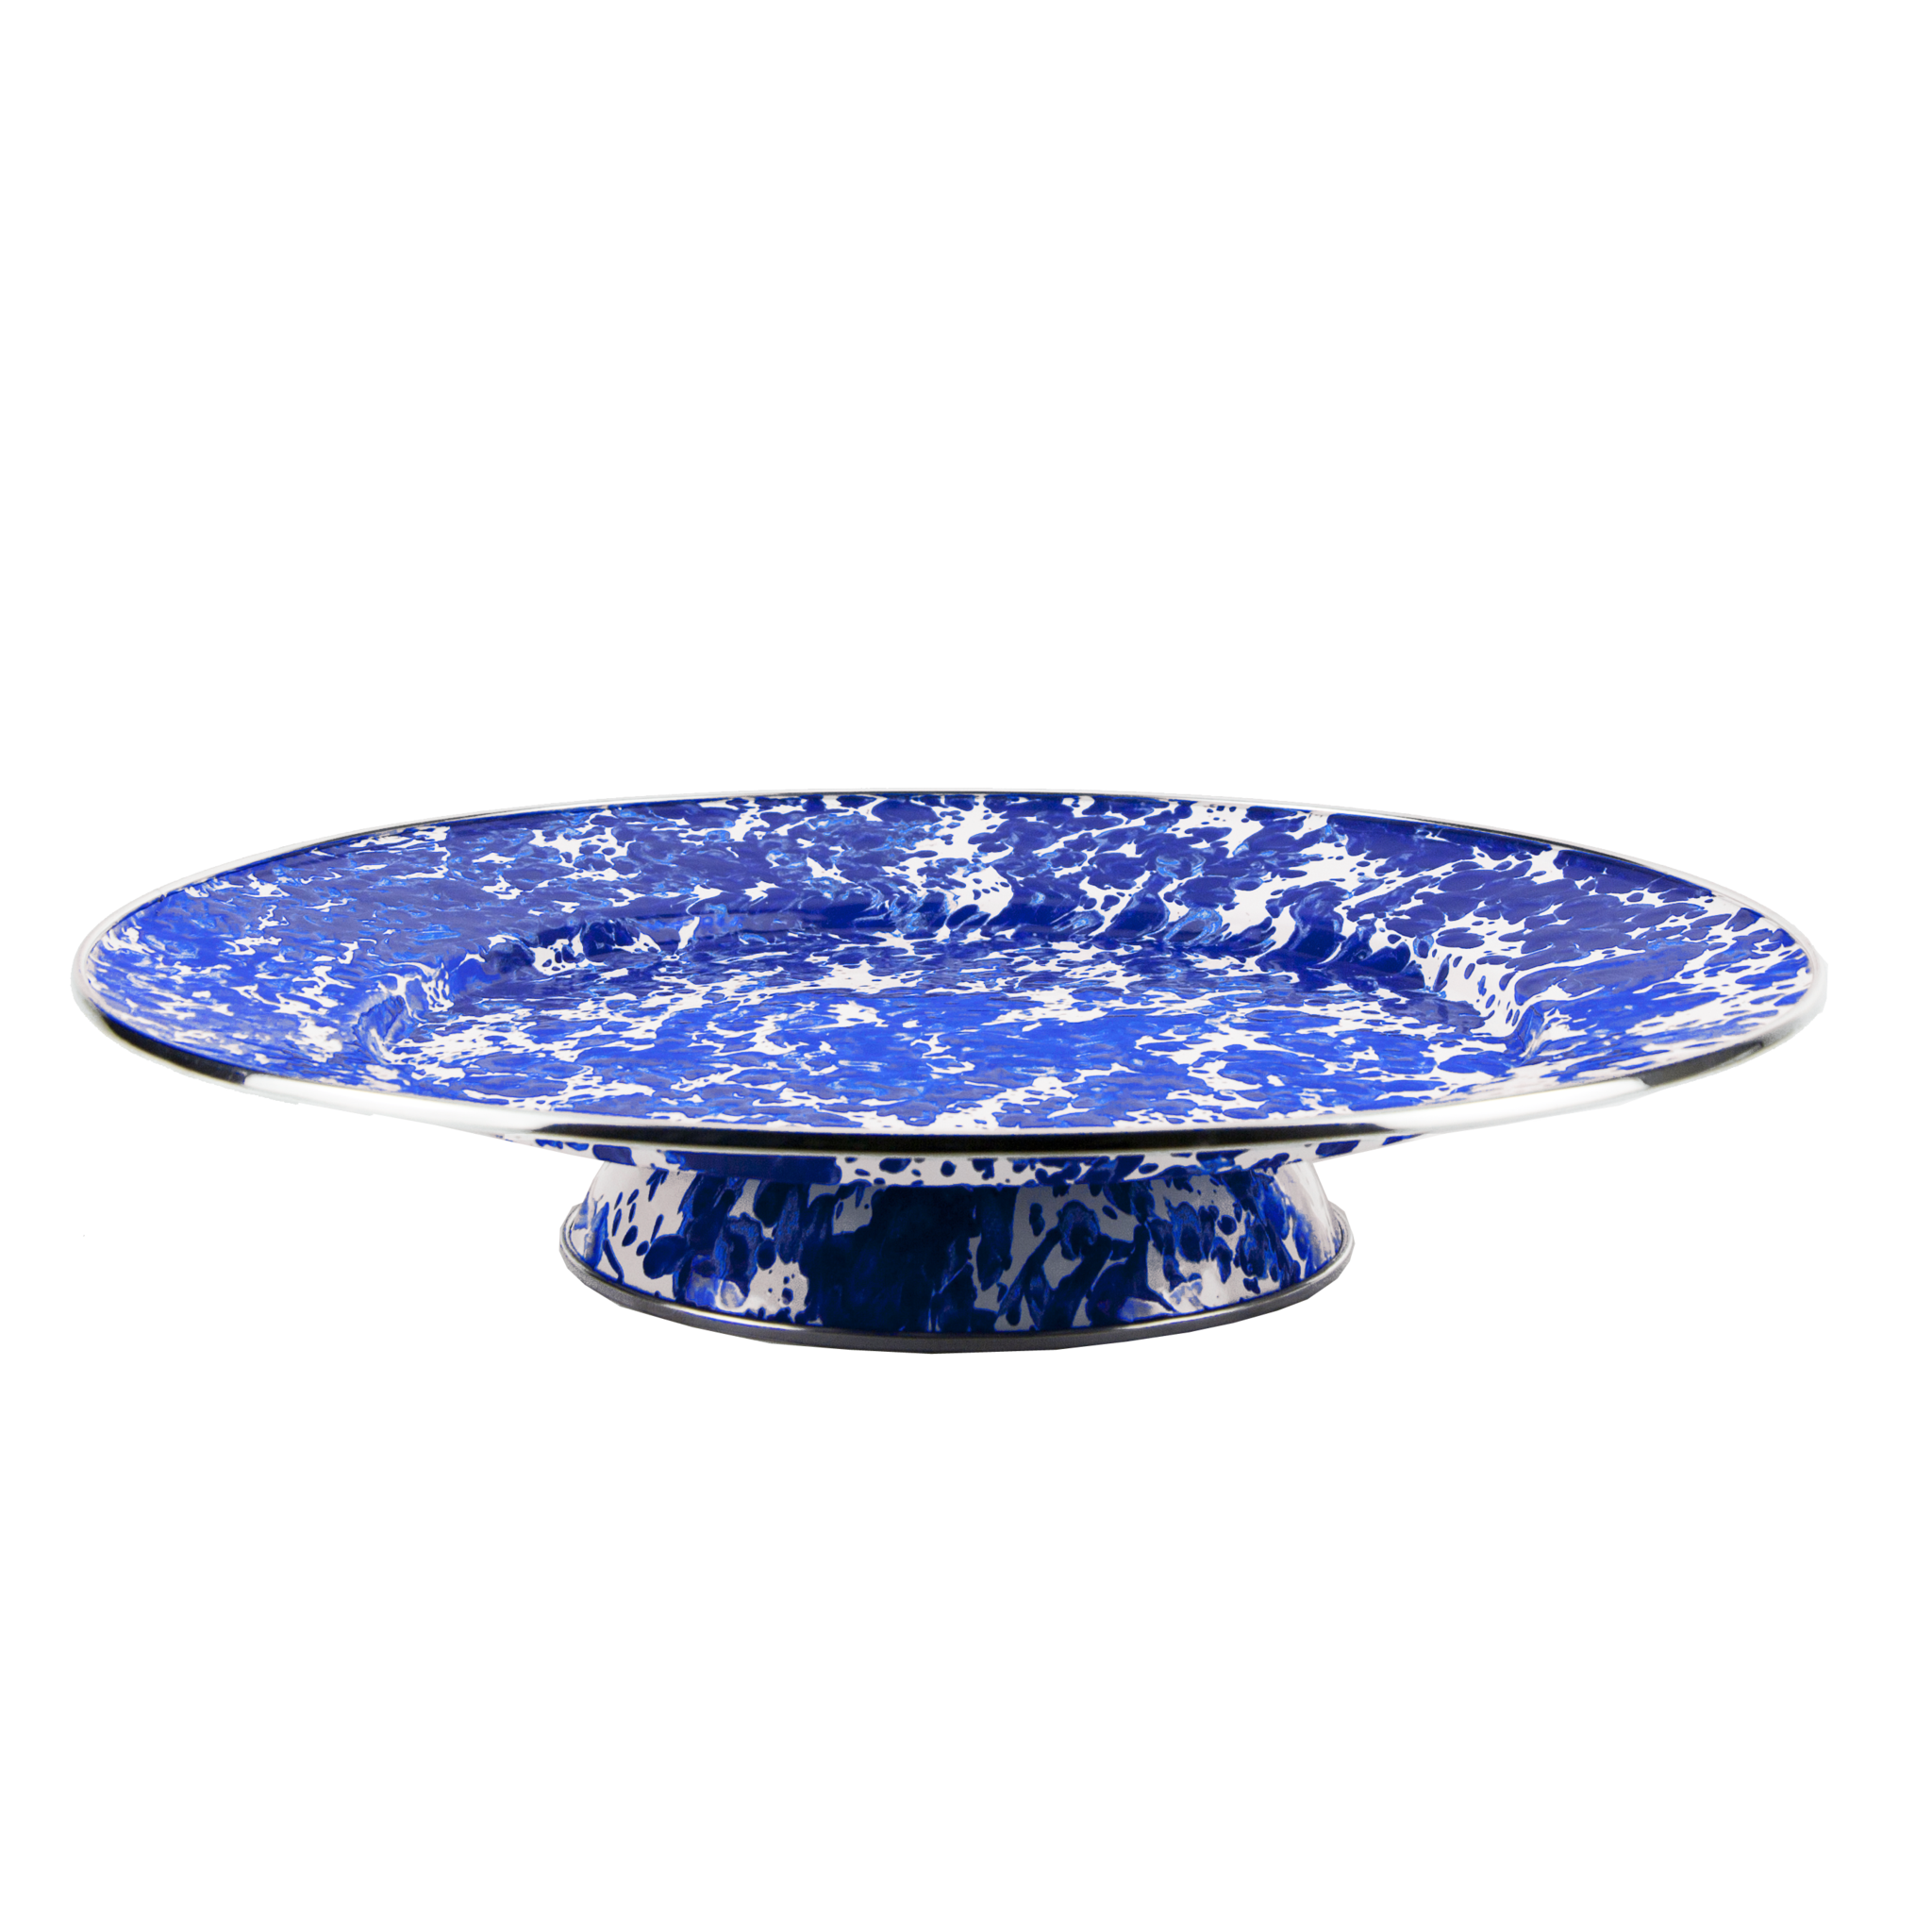 CB76 Cobalt Blue Swirl Cake Plate by Golden Rabbit